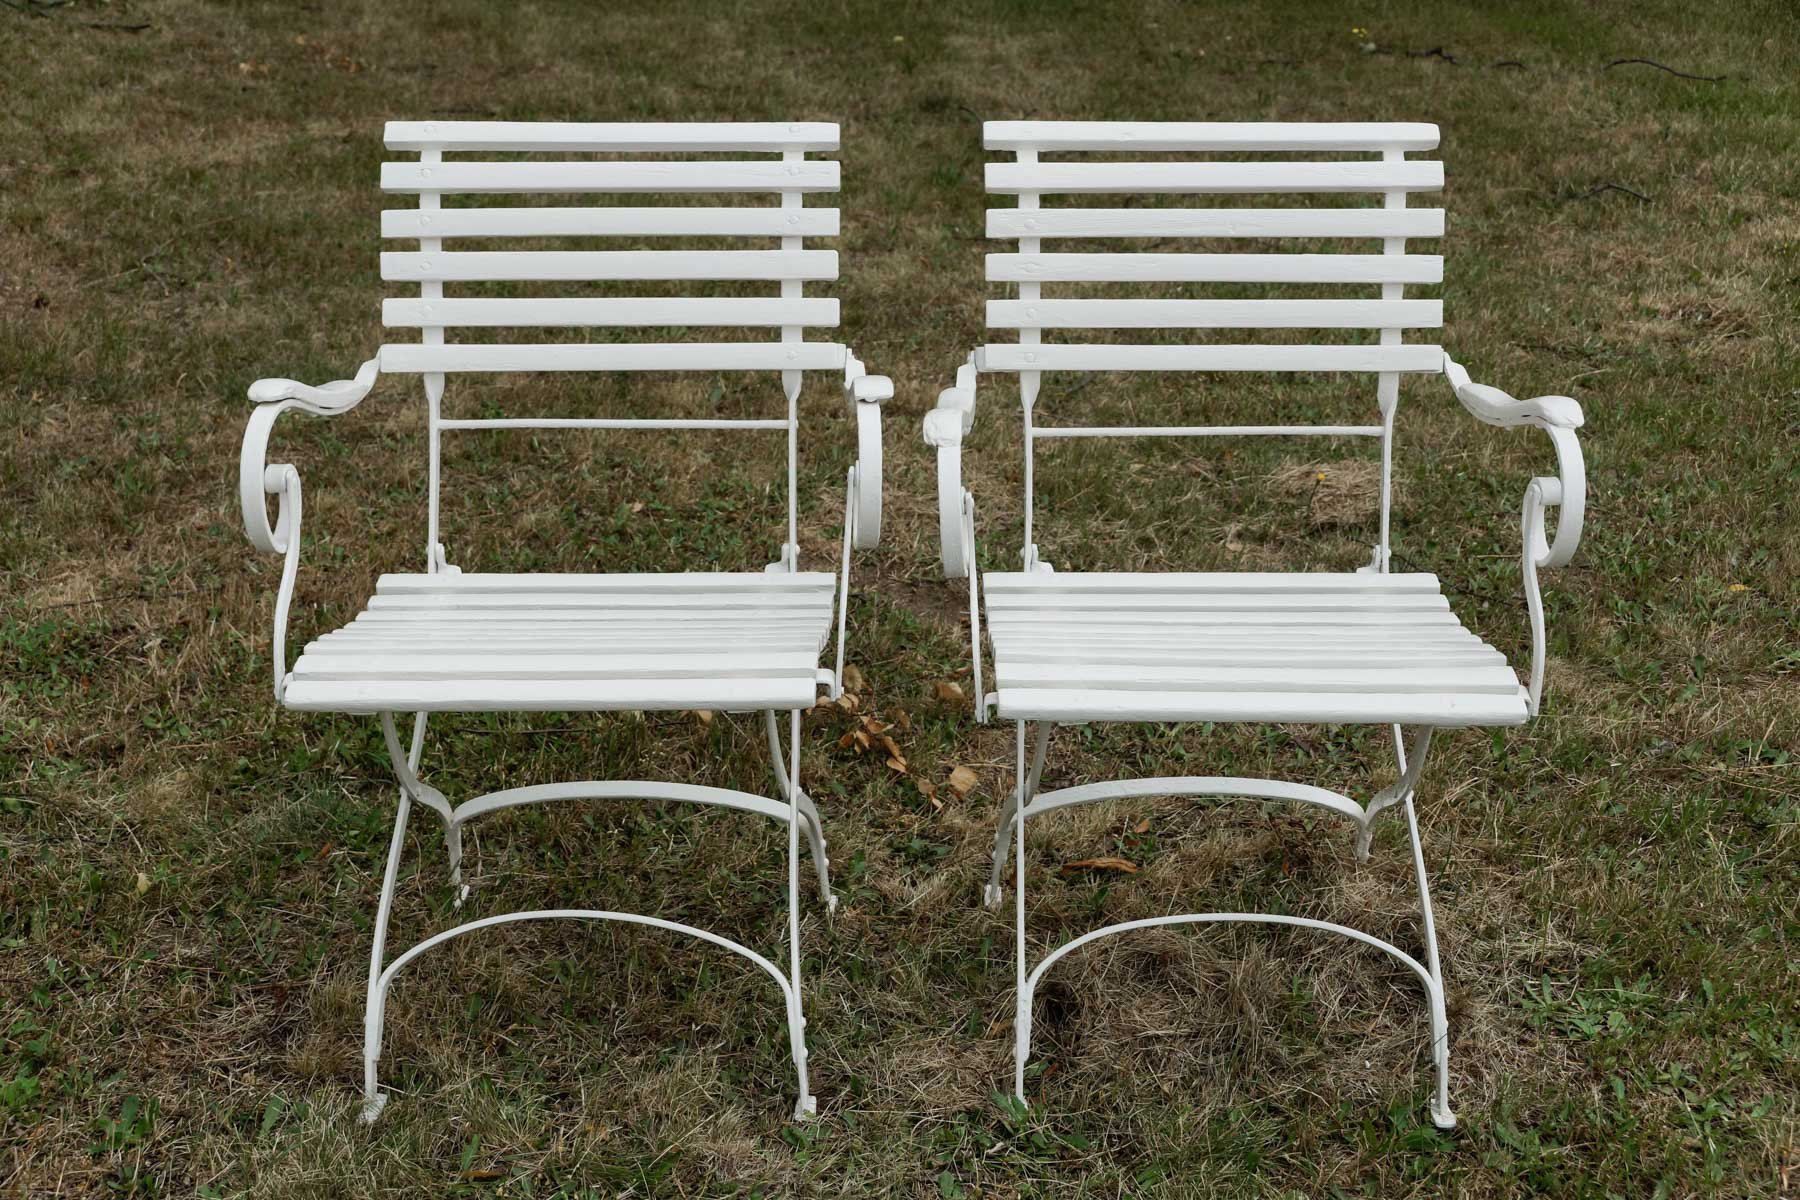 German Wrought Iron Garden Chairs 1880s Set of 2 for sale at Pamono